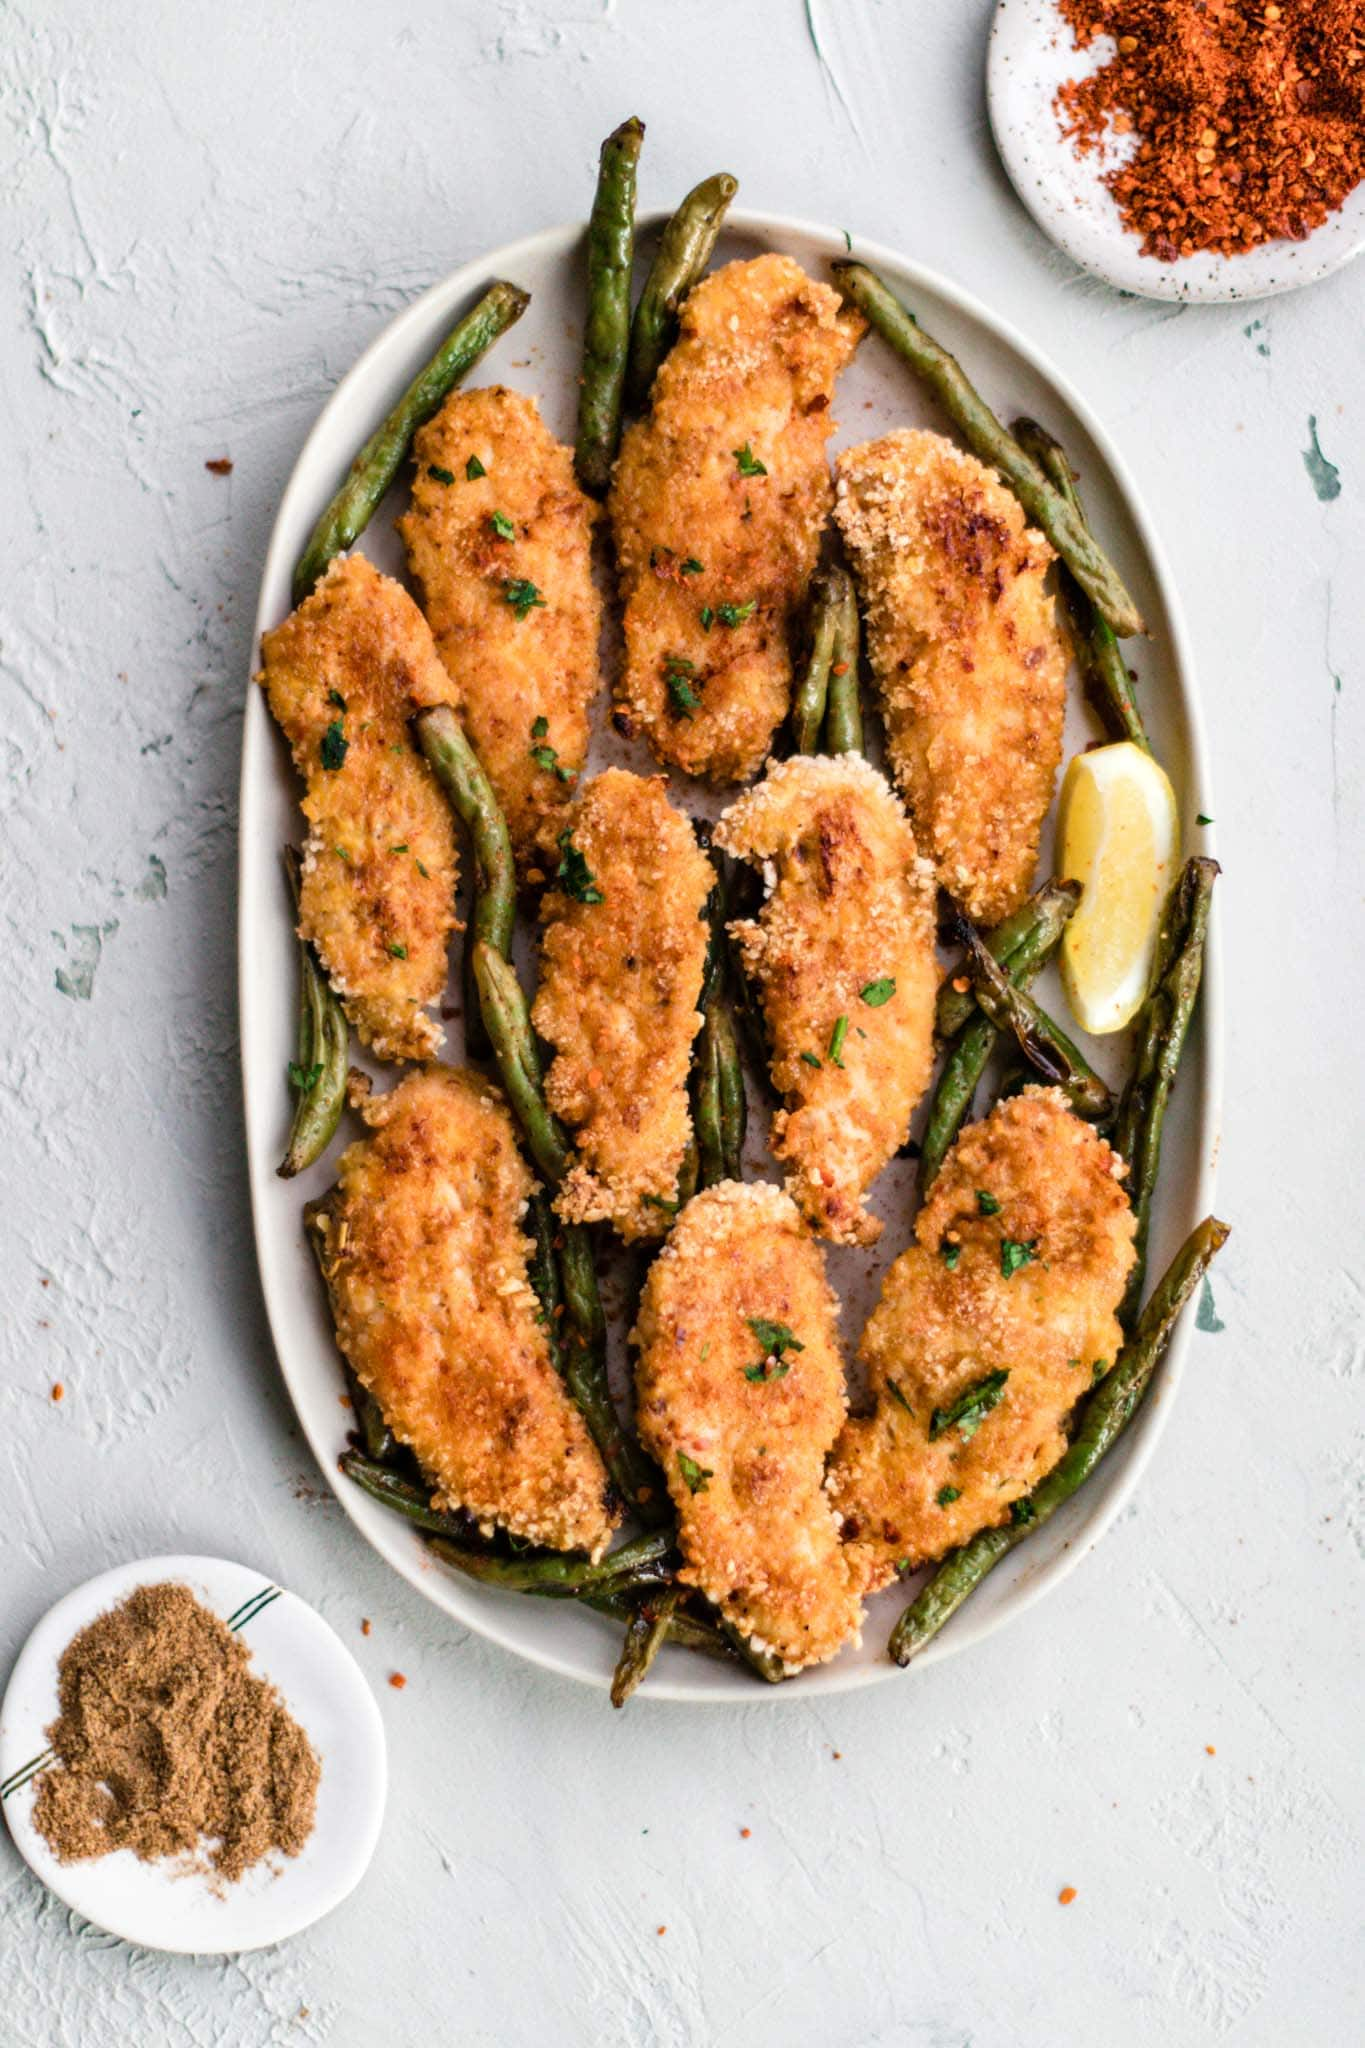 Baked Peri Peri Chicken Tenders with Masala Green Beans on an oval white platter garnished with a wedge of lemon.